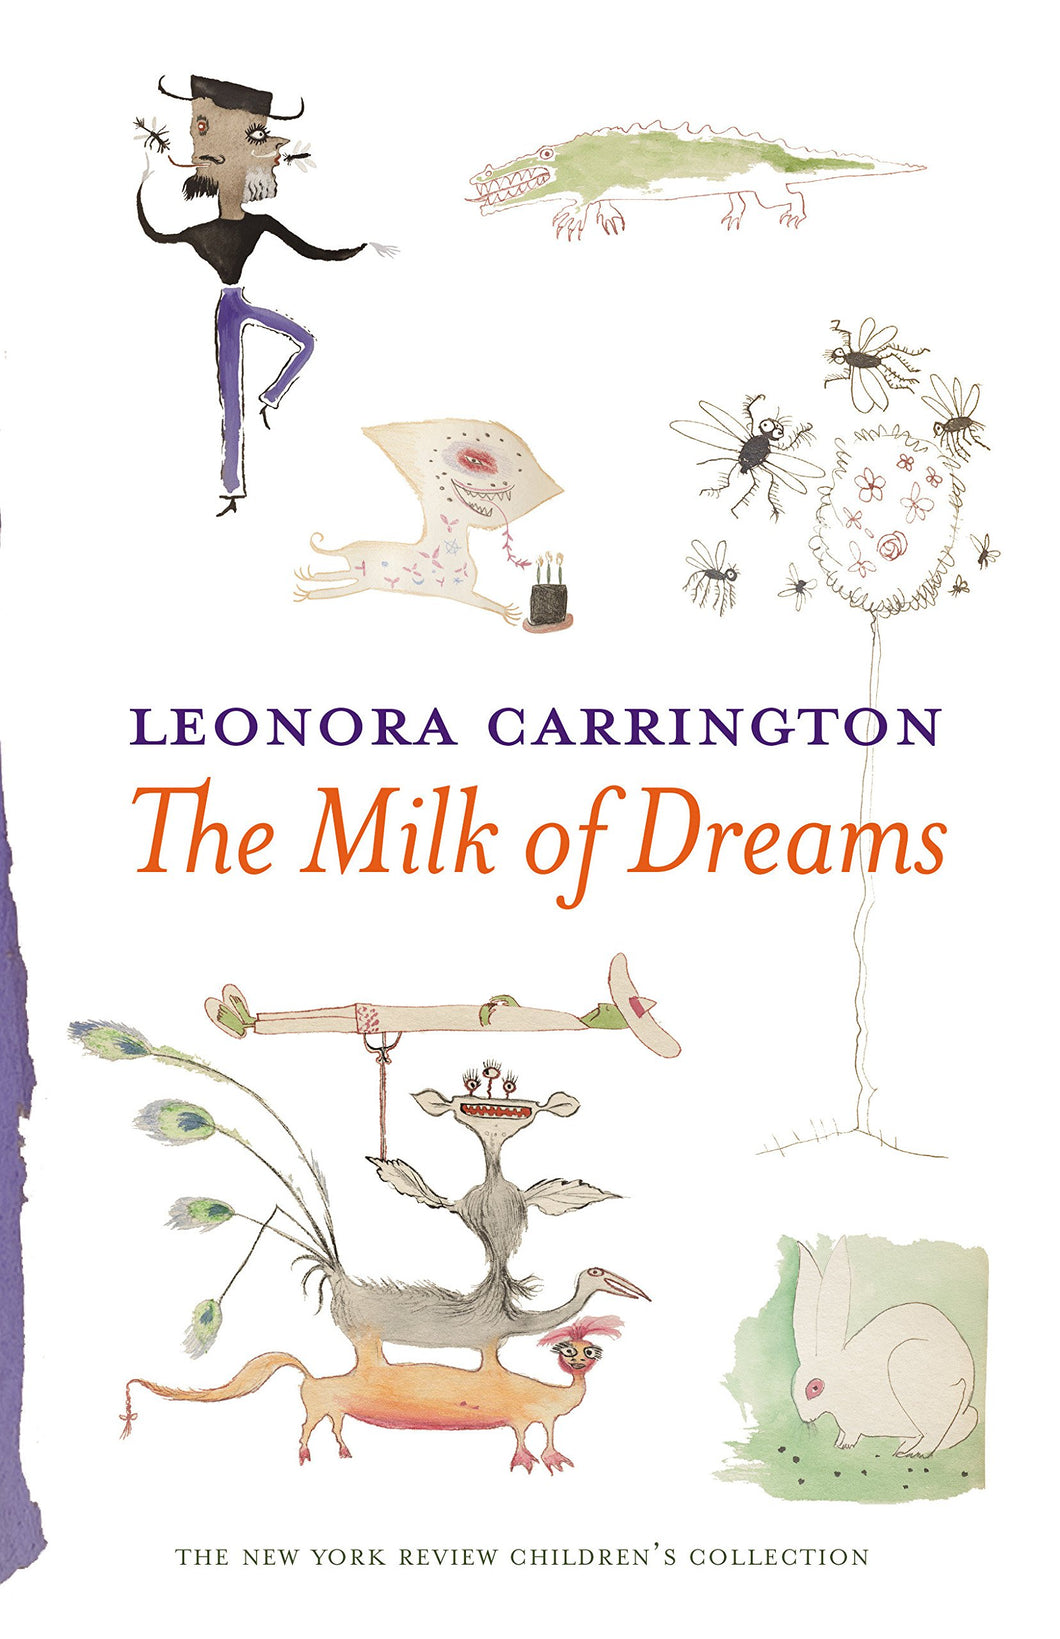 The Milk of Dreams by Leonora Carrington